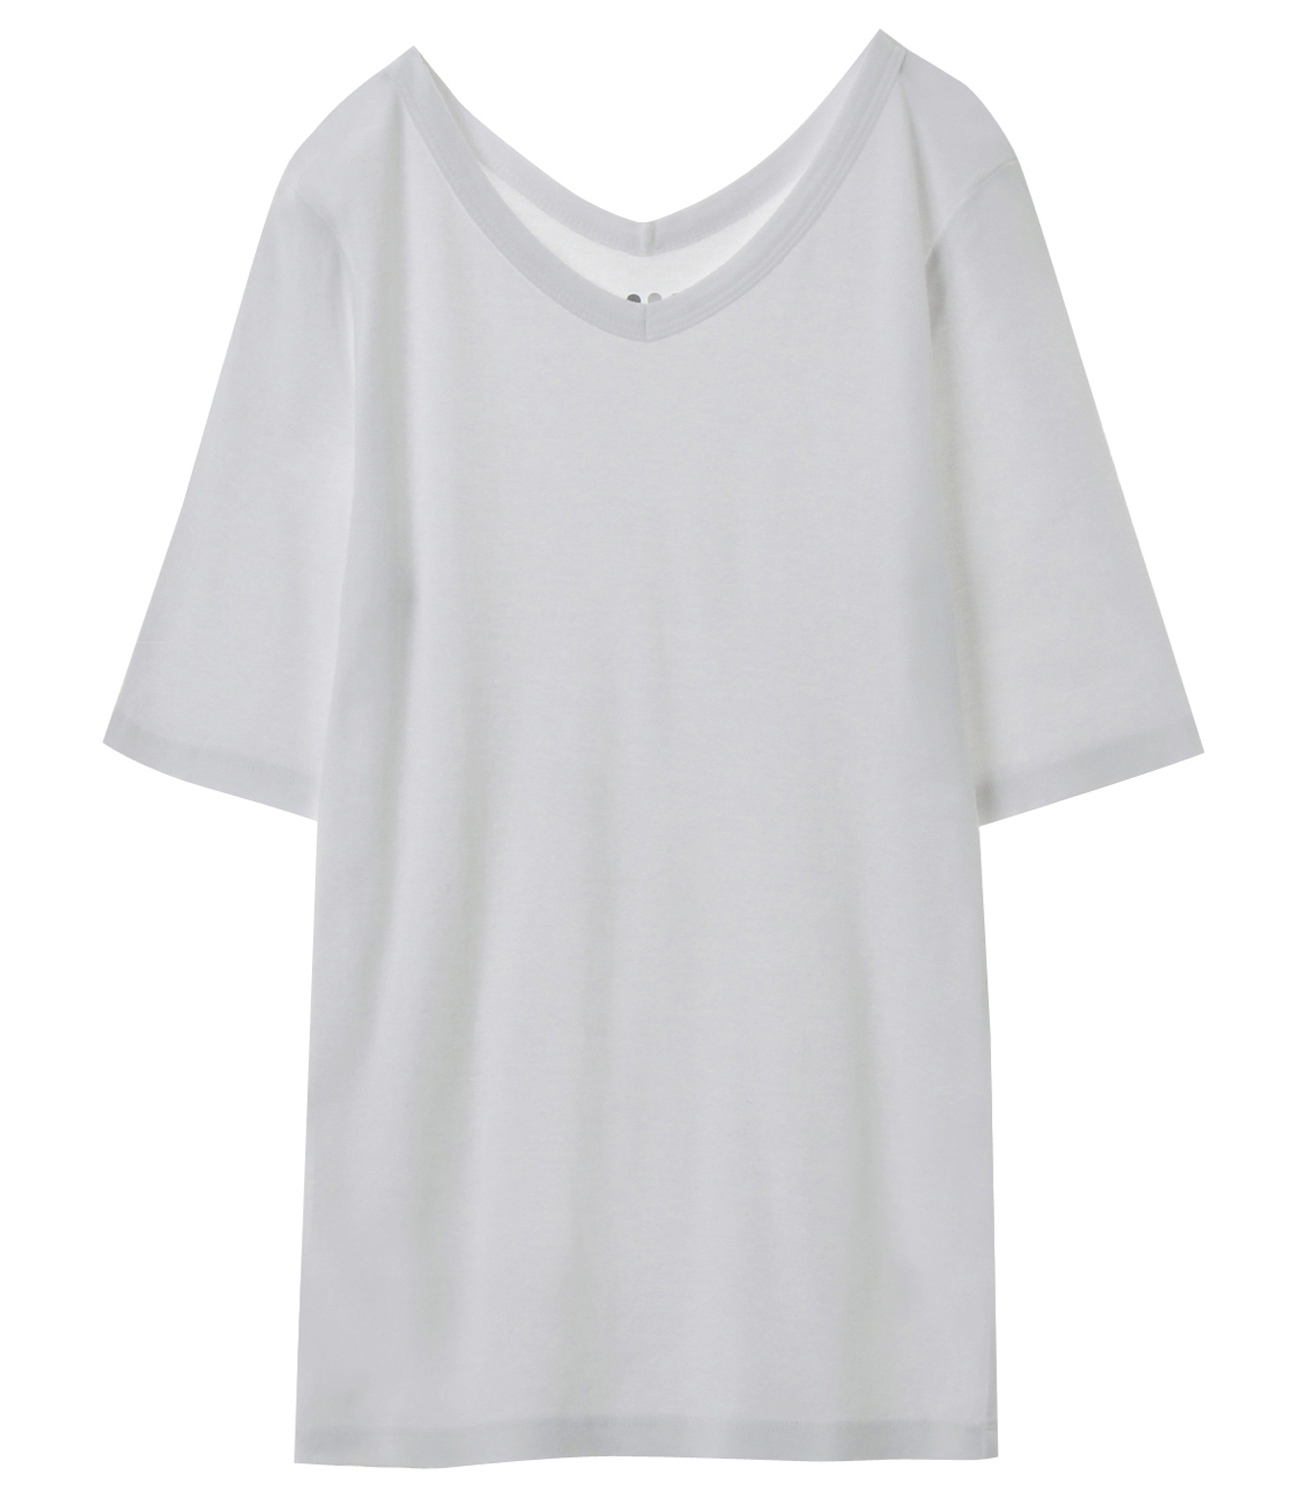 herritage knits double v necktee 詳細画像 white 1